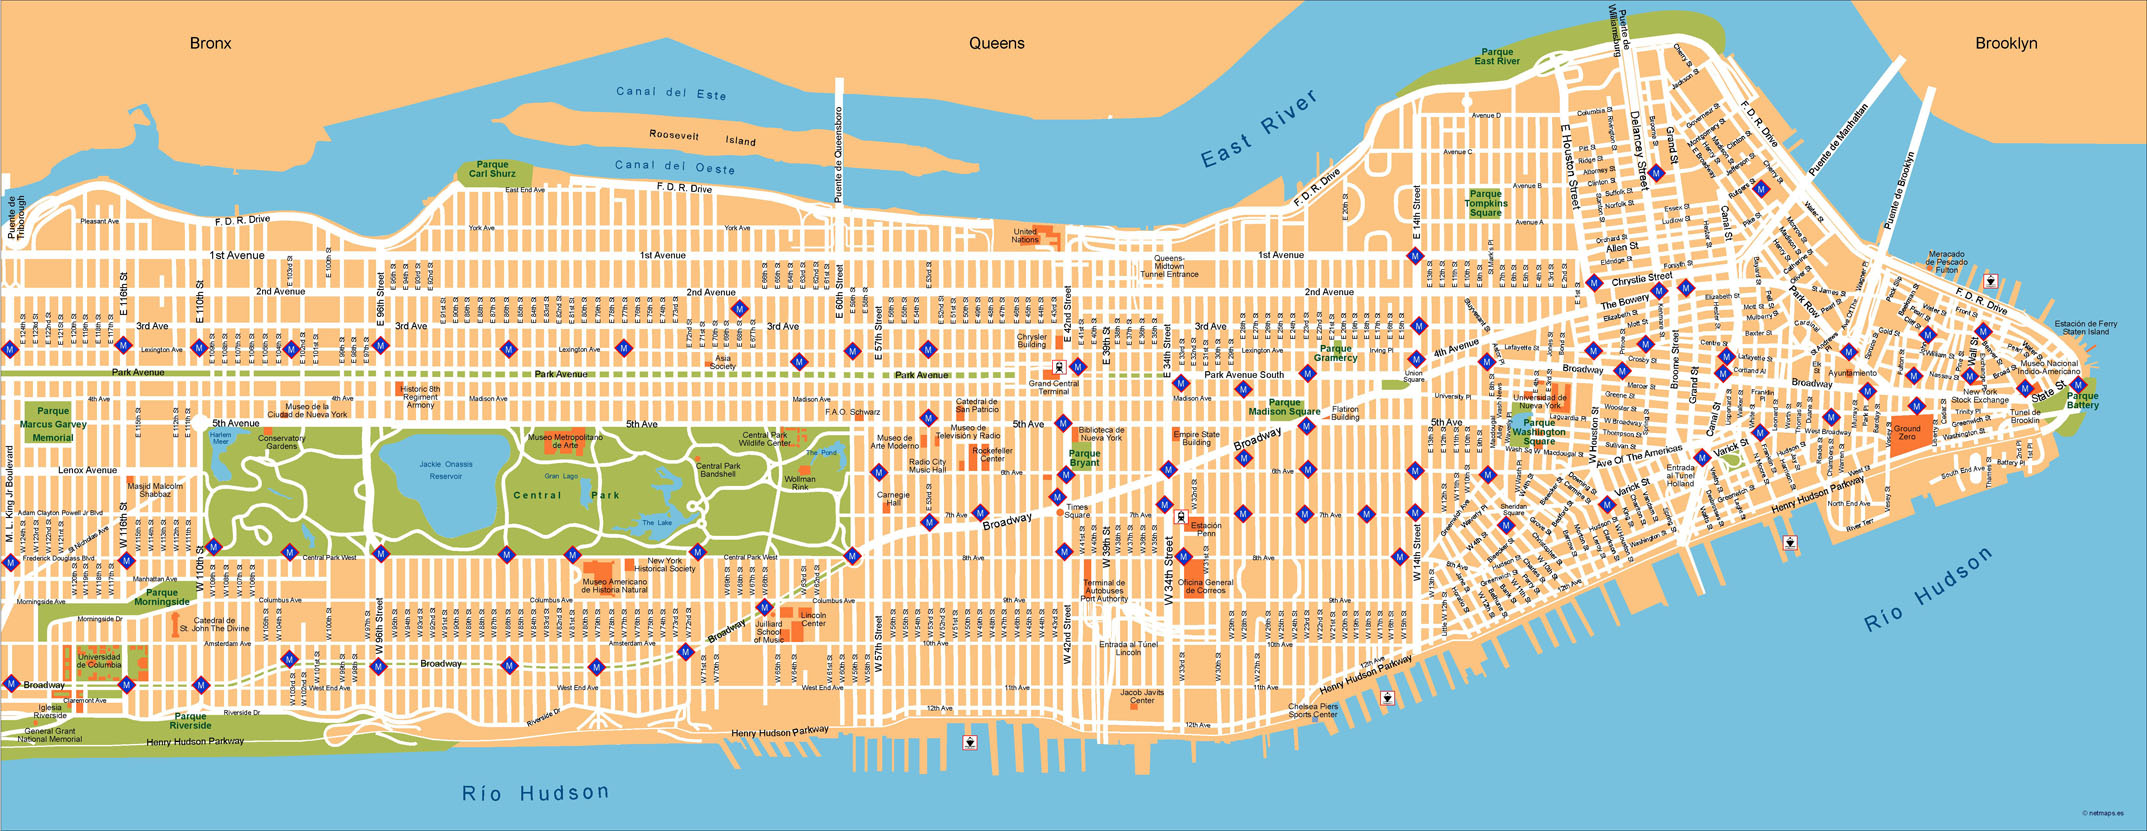 2147x831 Find New York Vector Map For A Project Netmaps. Vector Eps Maps